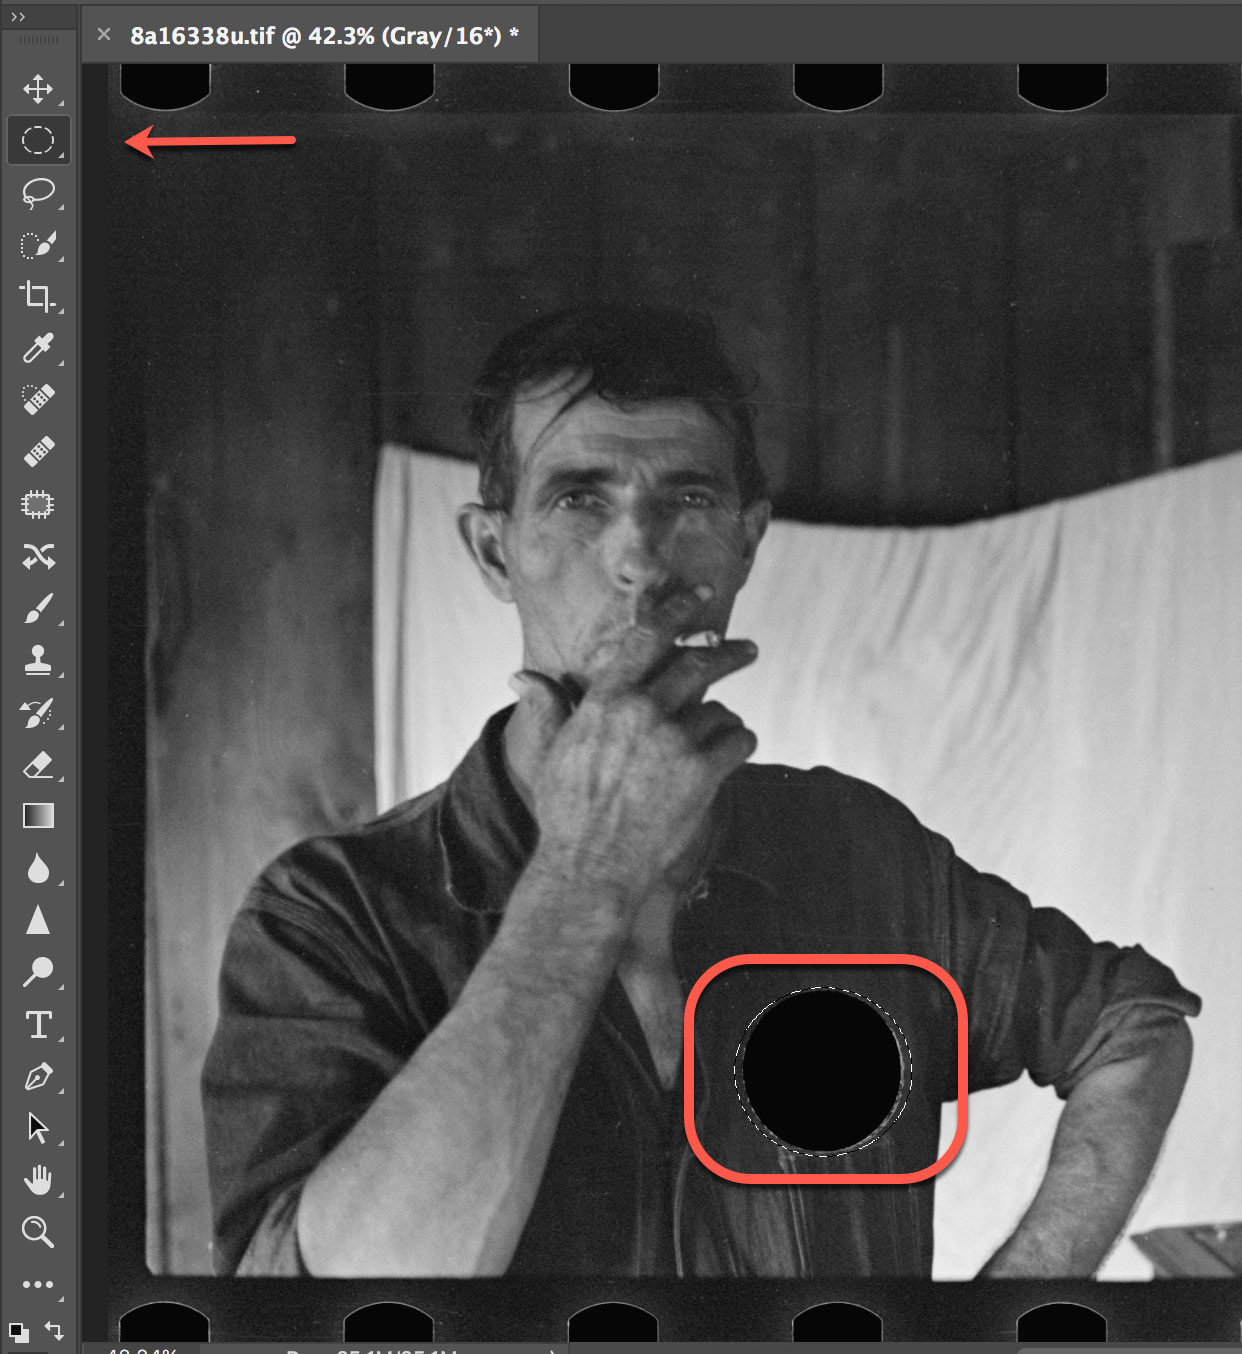 Figure 4 photograph with a selection tool highlighting the hole in the man's shirt